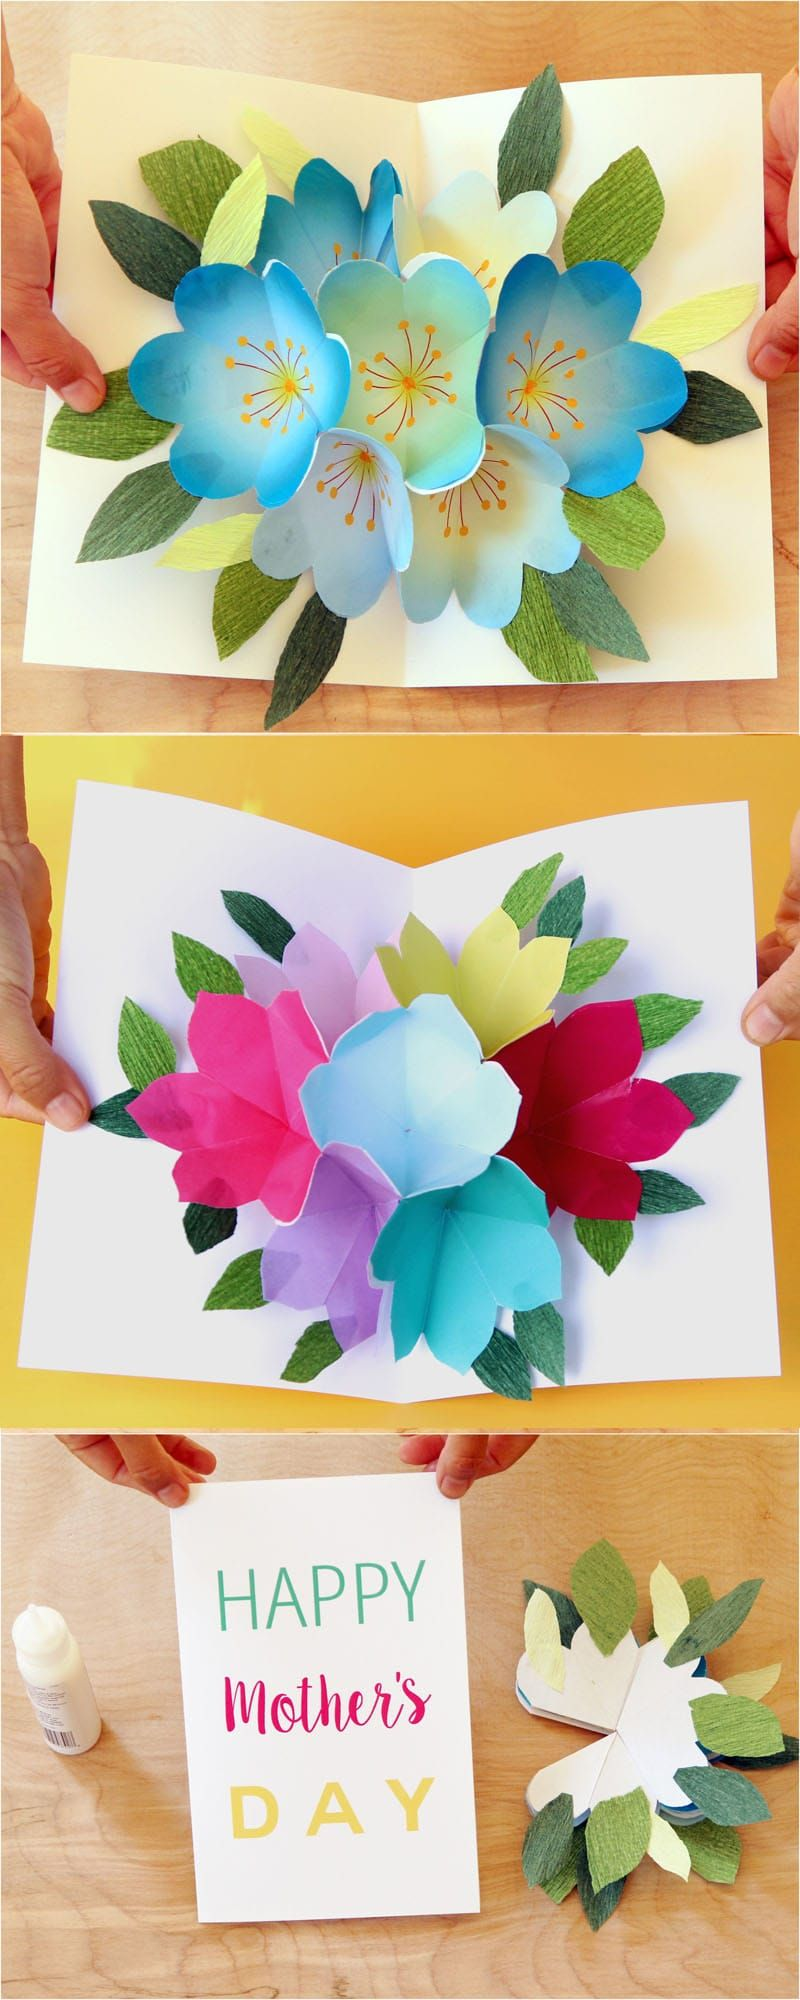 Pop up flowers diy printable motherus day card manualidades